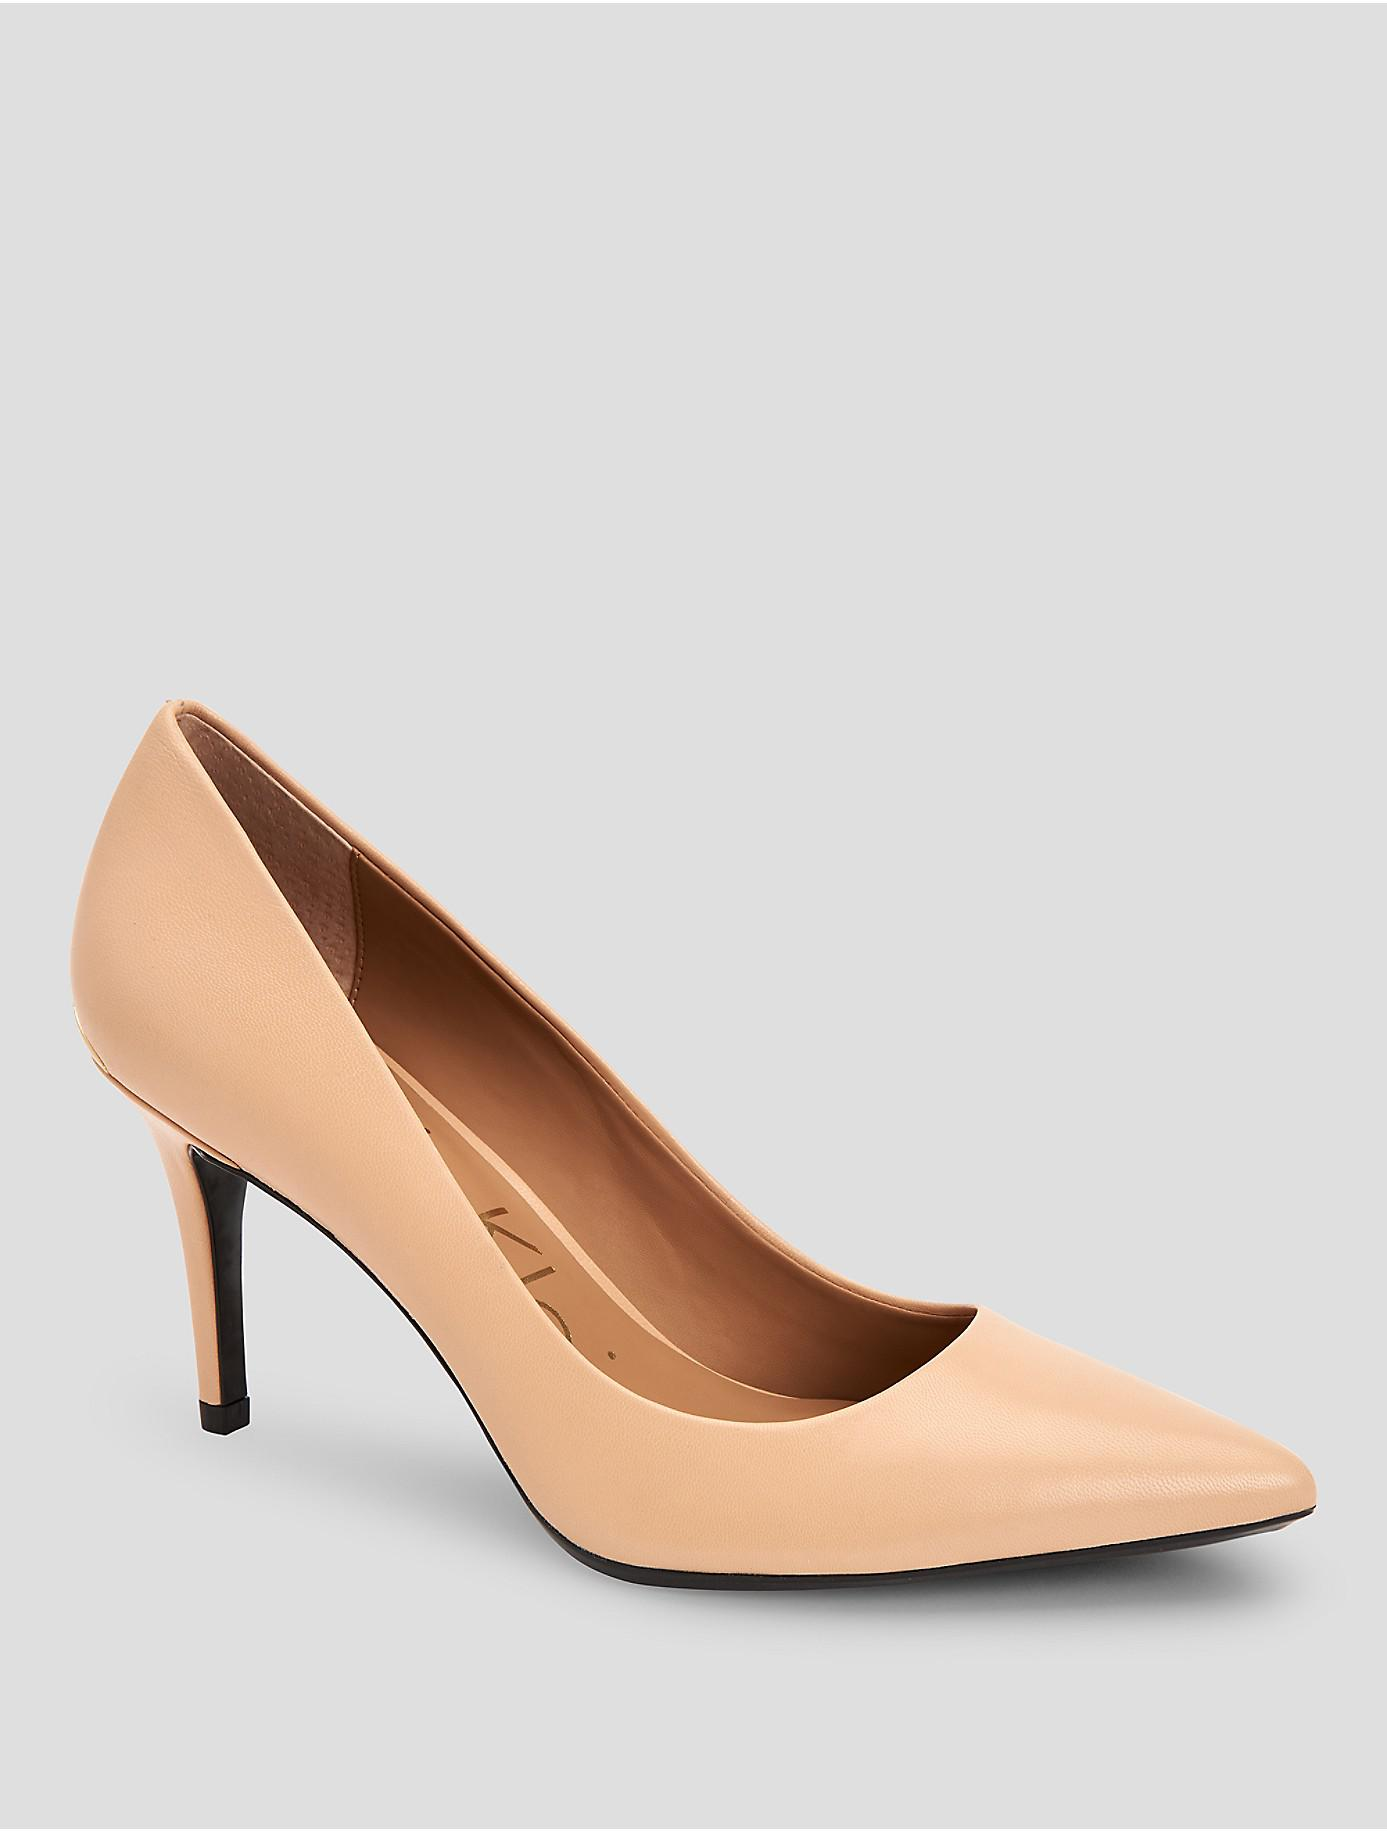 c7bba0efd0 Lyst - Calvin Klein Gayle Leather Pump in Natural